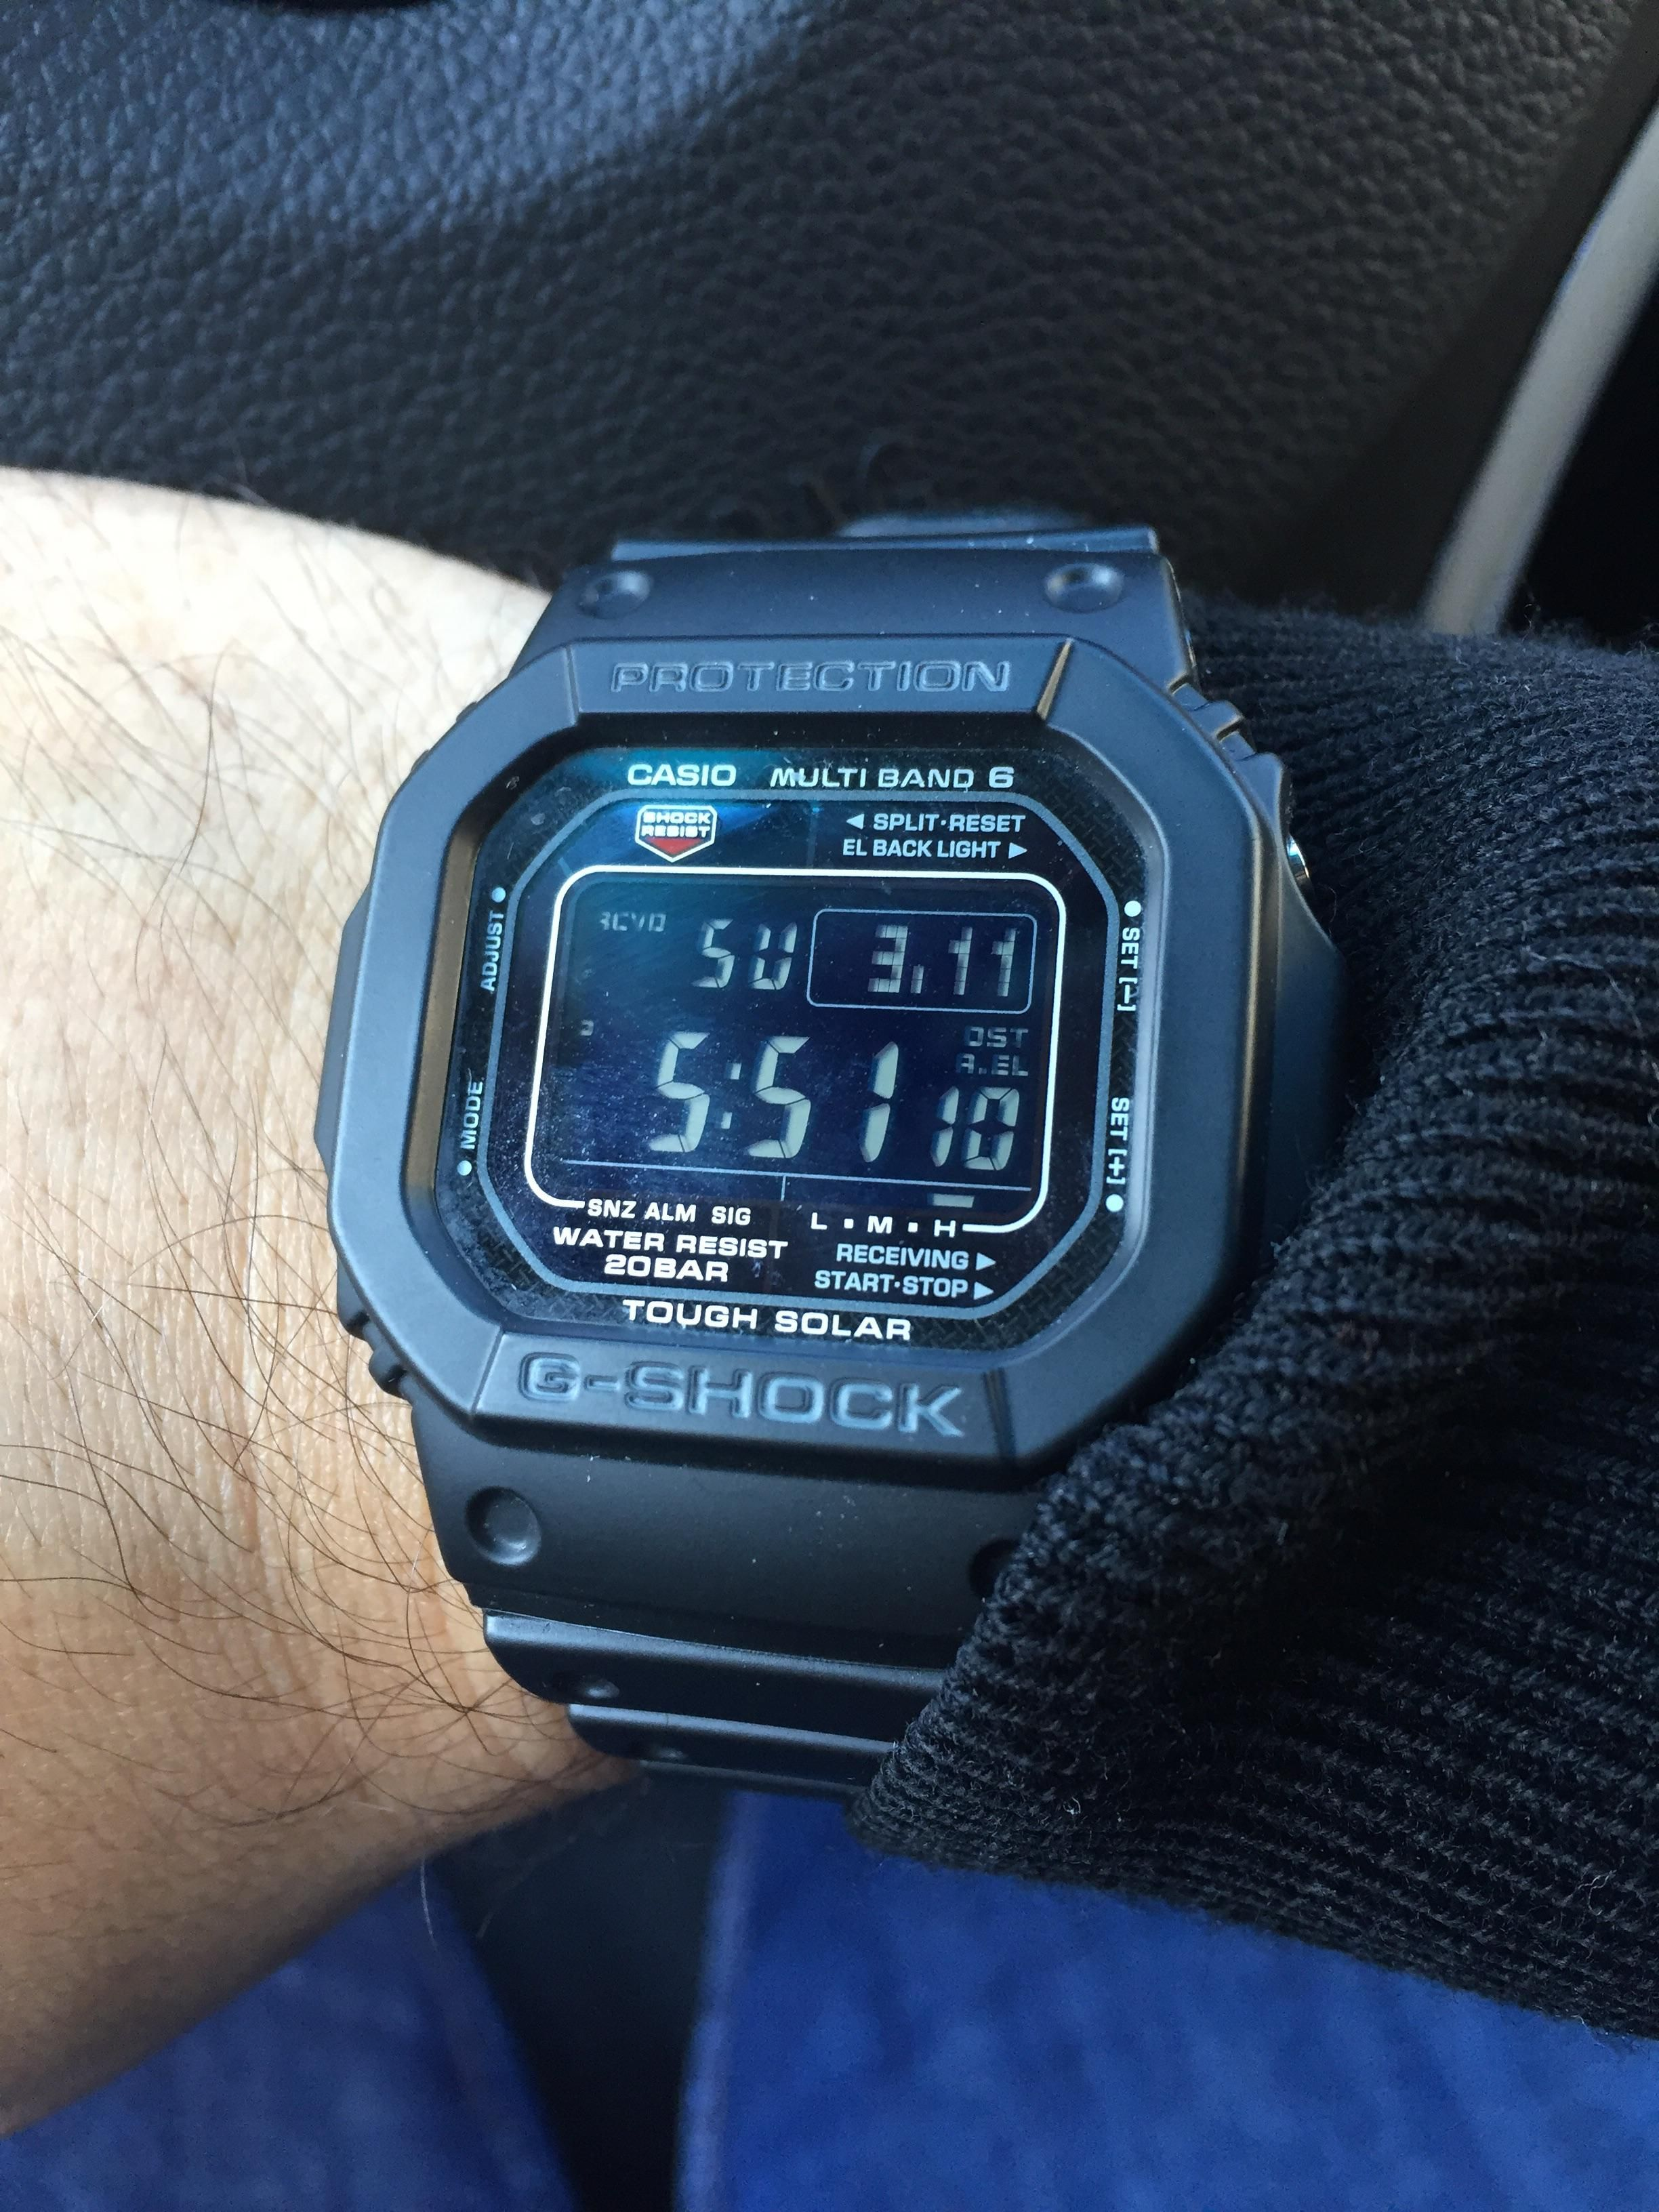 Pin by Mohammed Murtuza on G Shock Digital square watches